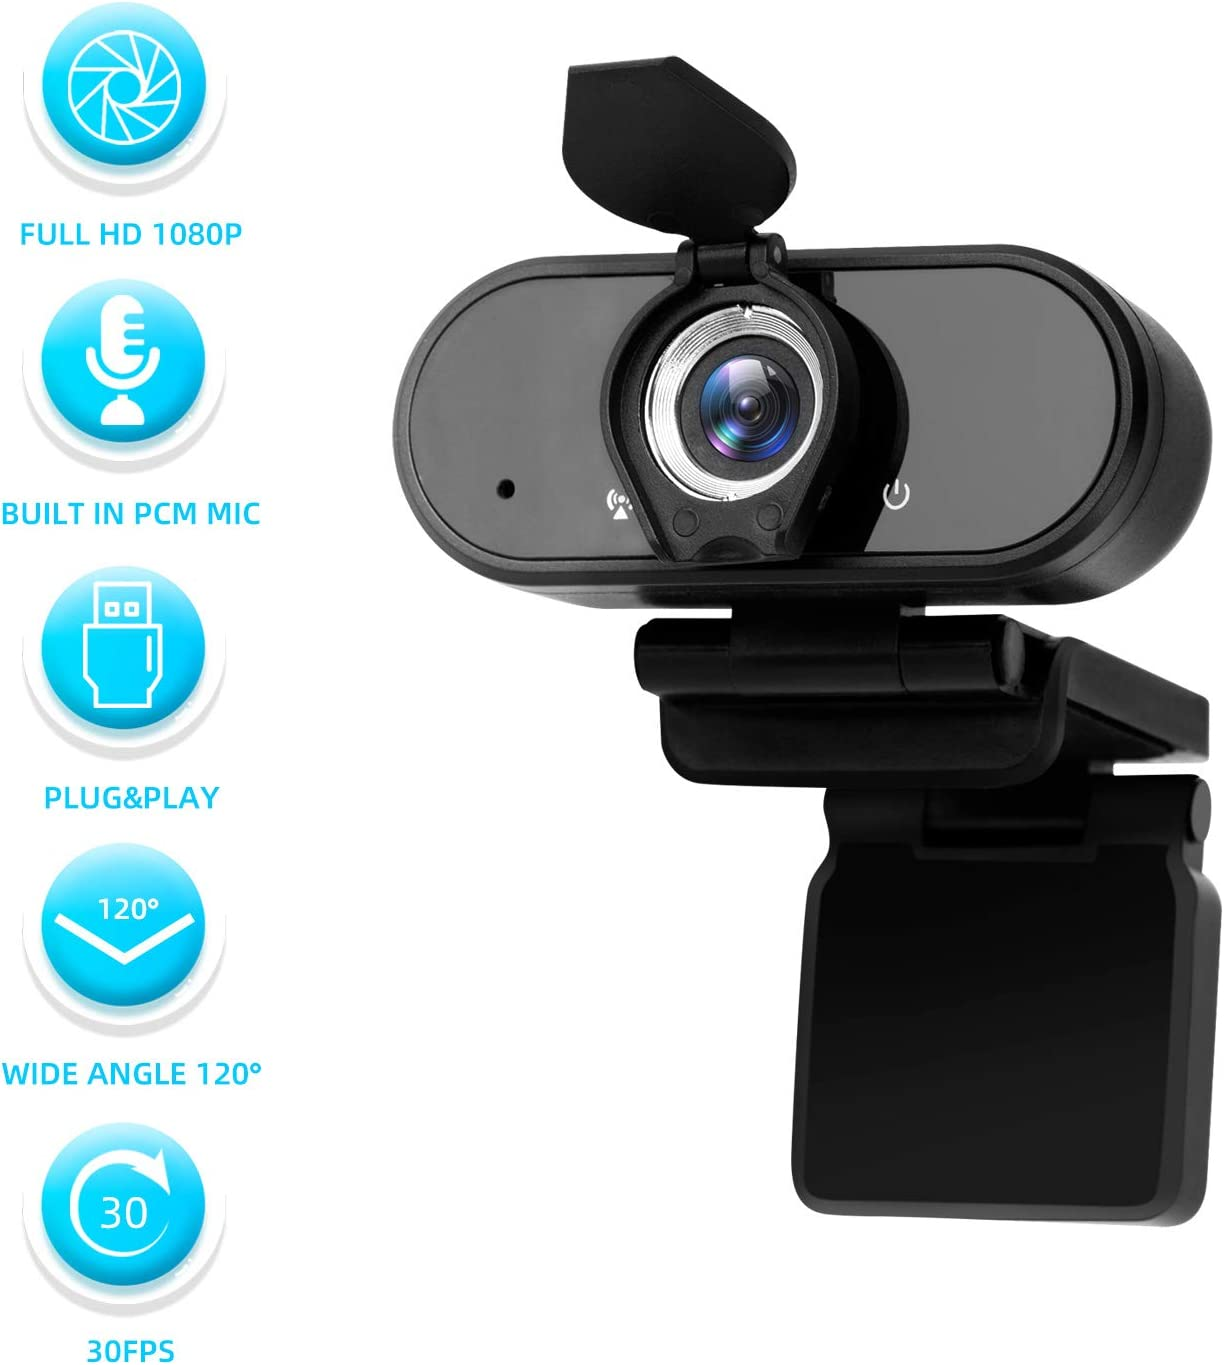 2020 New Full HD 1080p Webcam,SAFEVANT PC Webcams with Microphone,Plug & Play USB Webcam for Desktop & Laptop,Streaming Web cam with Wide Dynamic Range for Video Conferencing Record